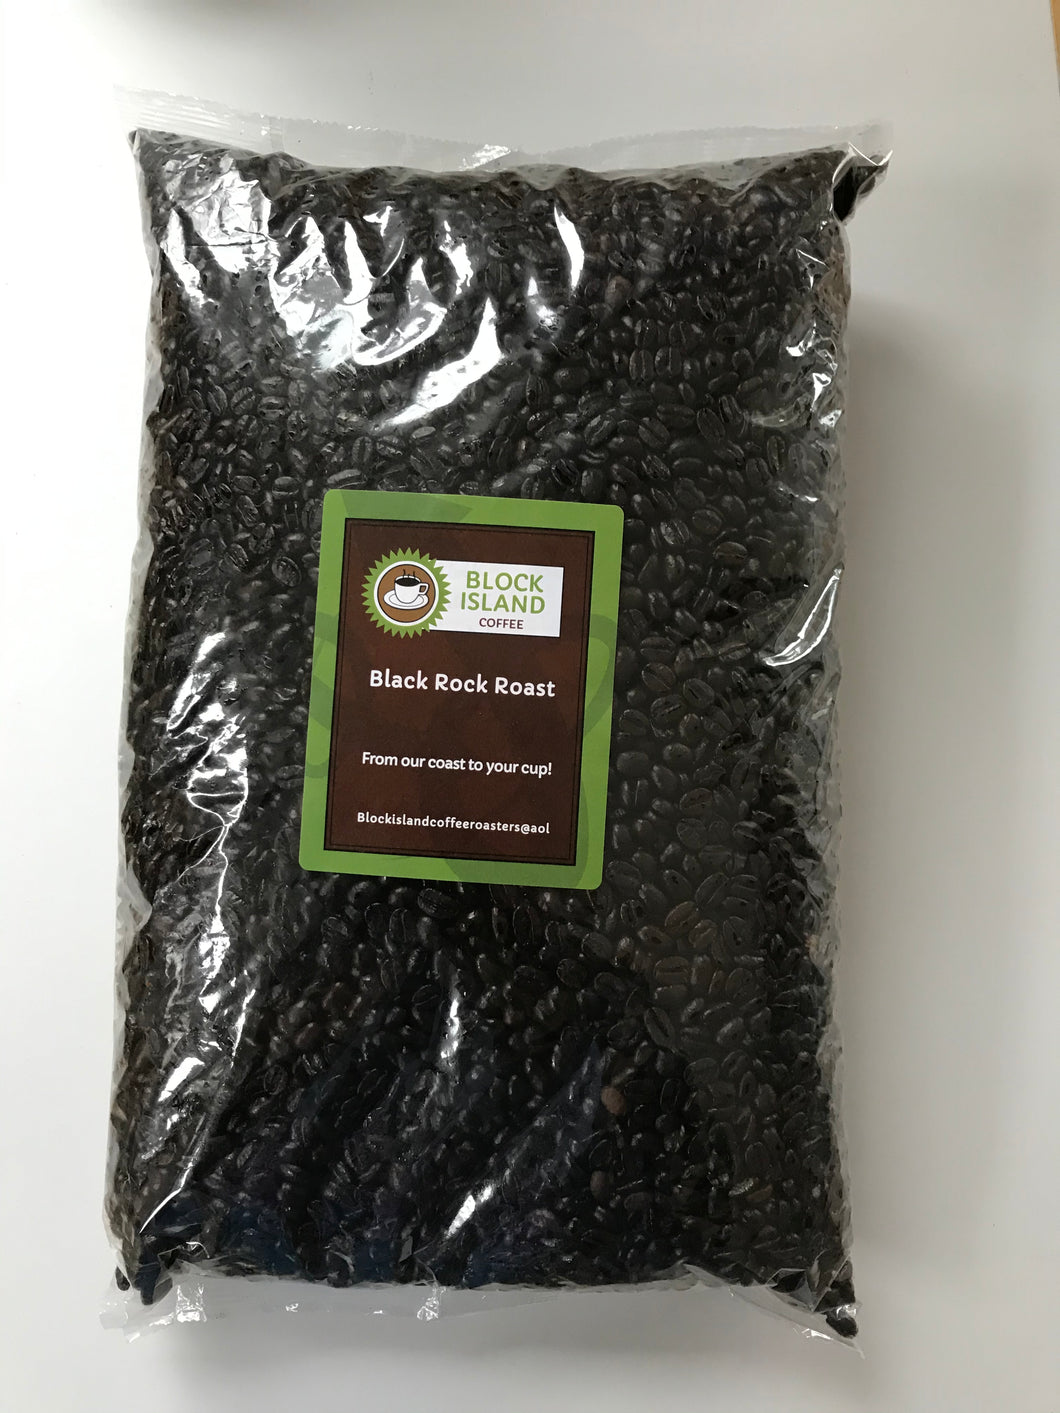 5 Lbs bag of Black Rock Roast -Beans